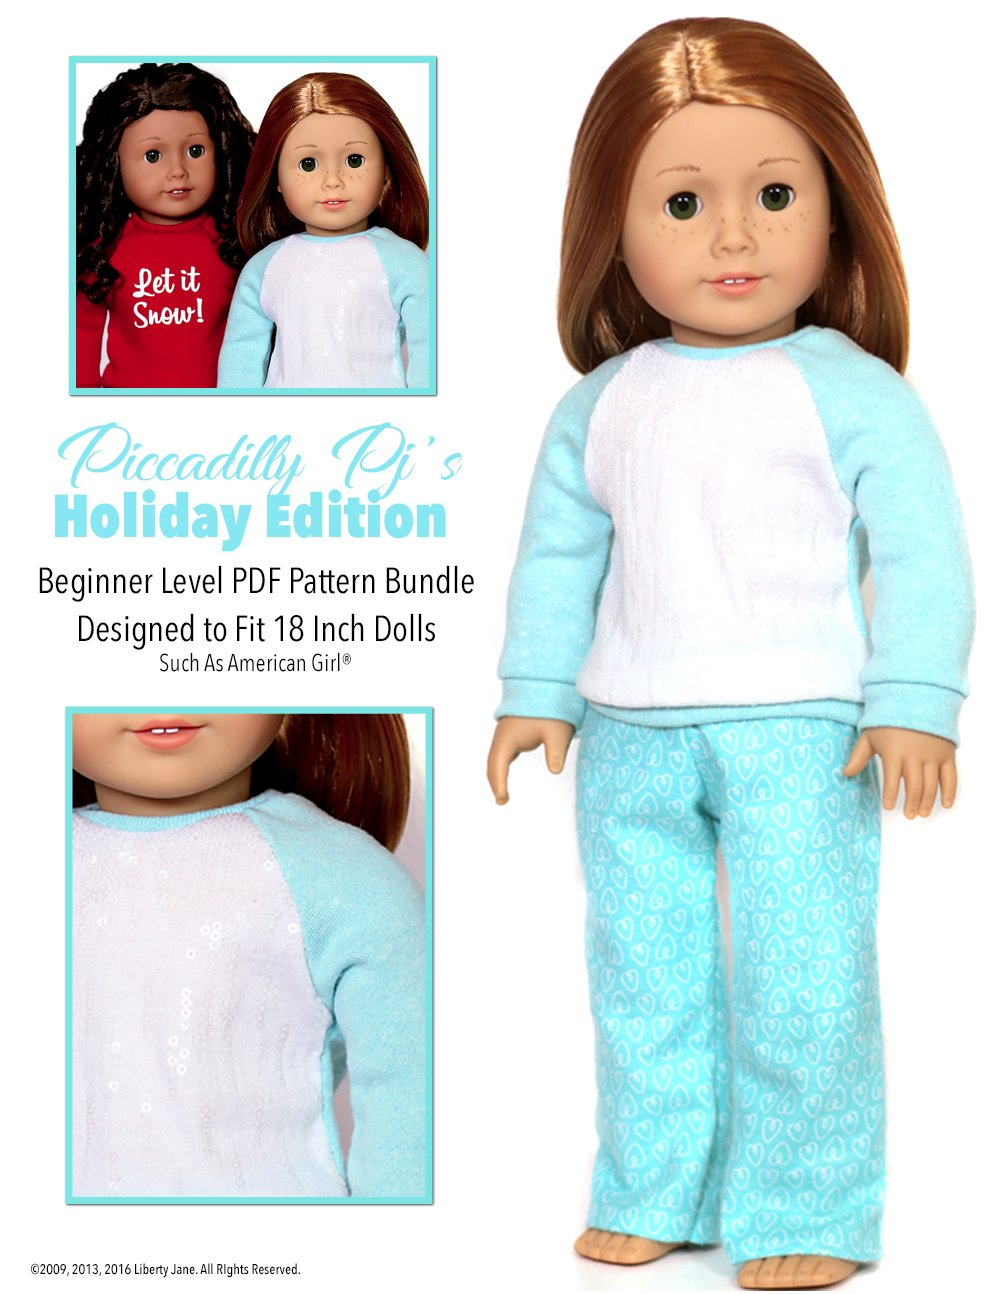 Sweet Pajamas Nightwear Top And Trousers For 18inch AG American Doll Dolls